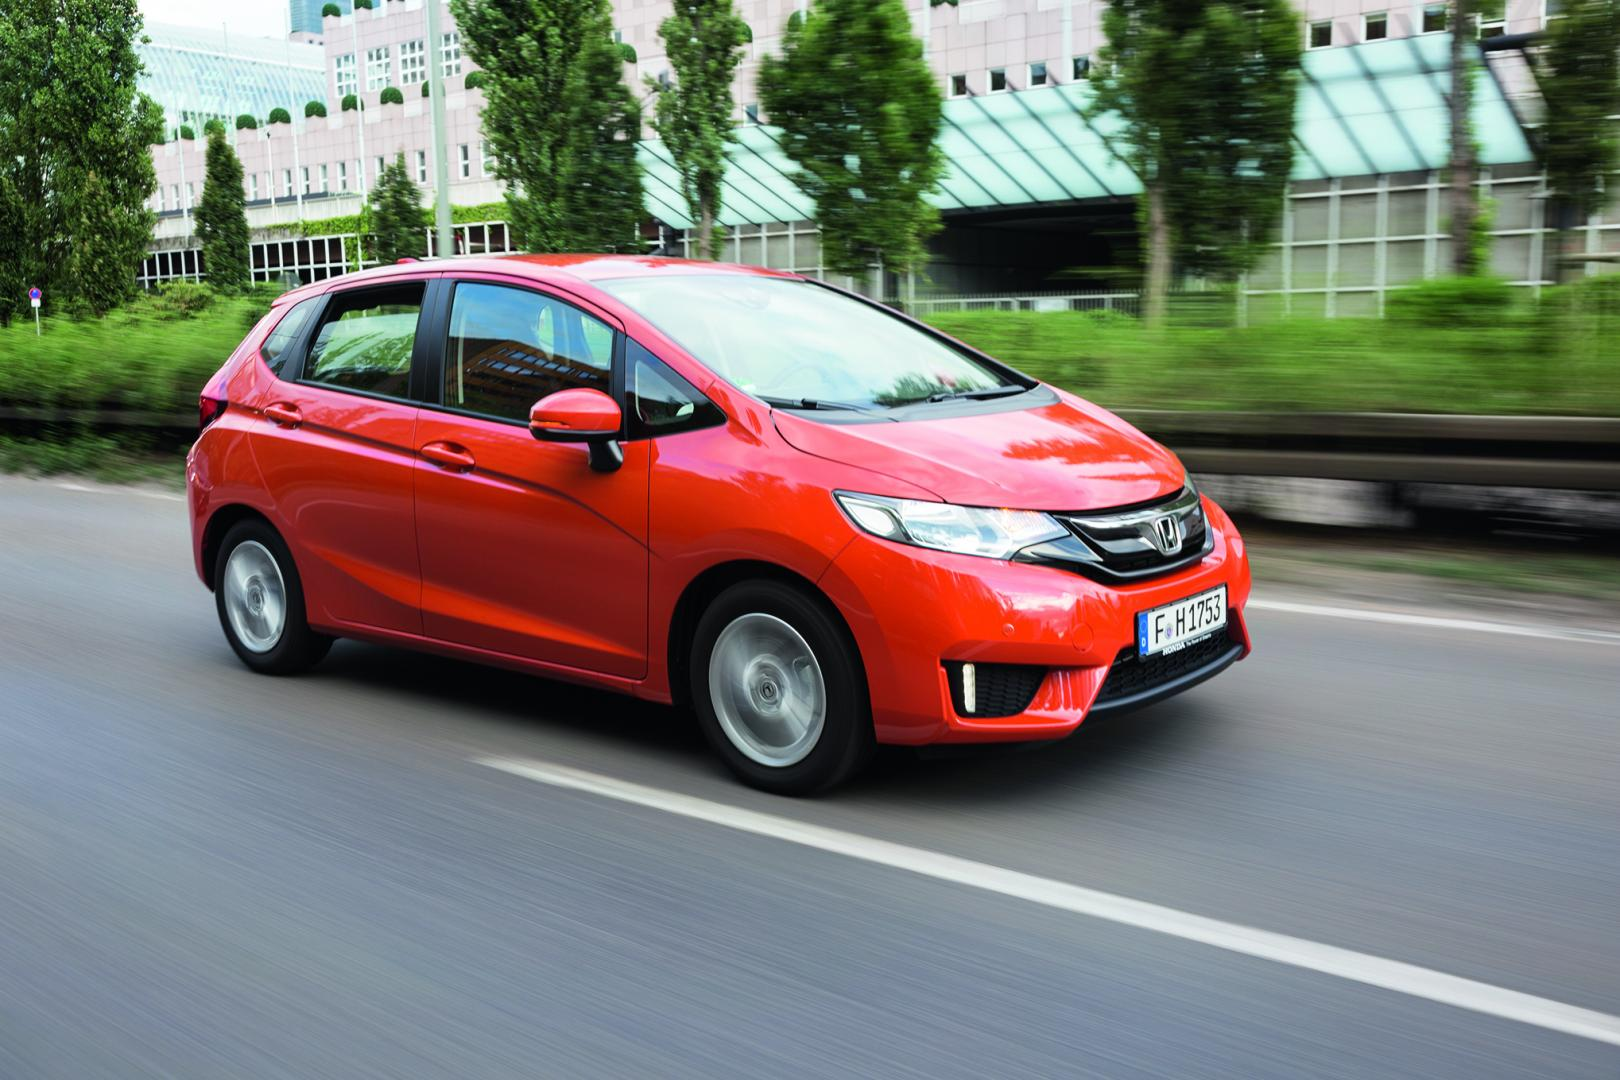 honda jazz 1 3 i vtec elegance topgear. Black Bedroom Furniture Sets. Home Design Ideas